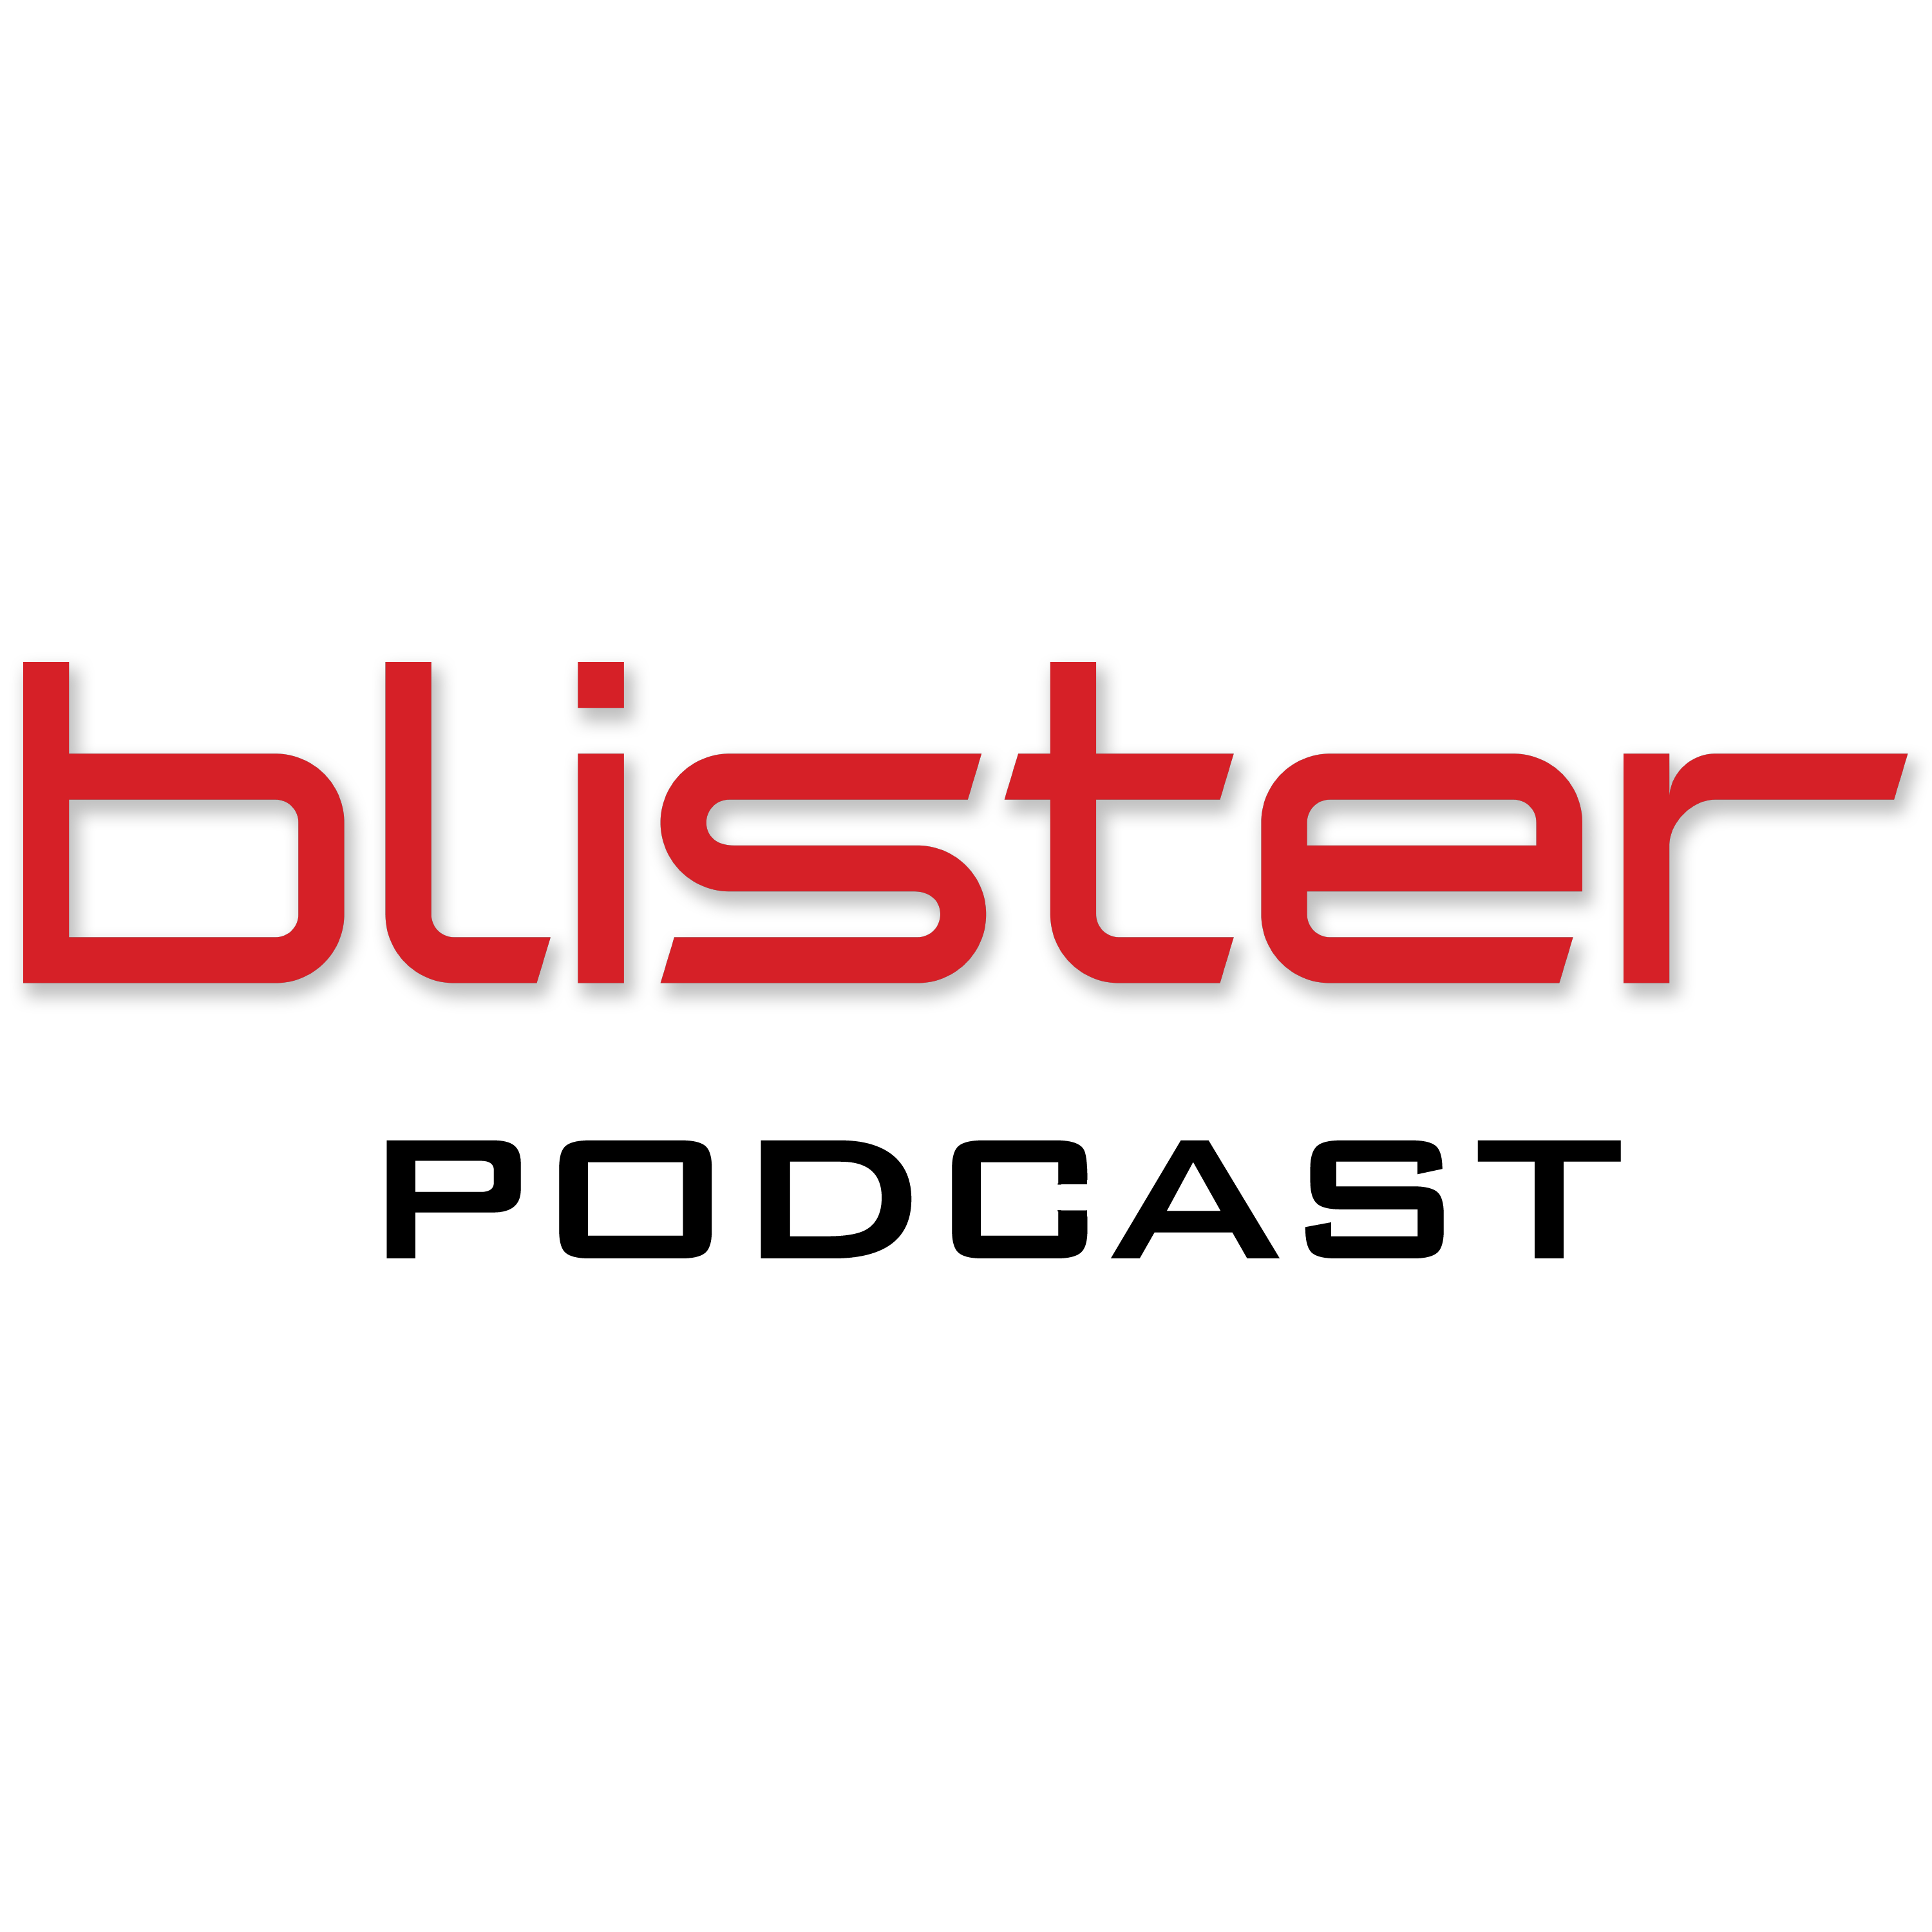 <![CDATA[The Blister Podcast]]>